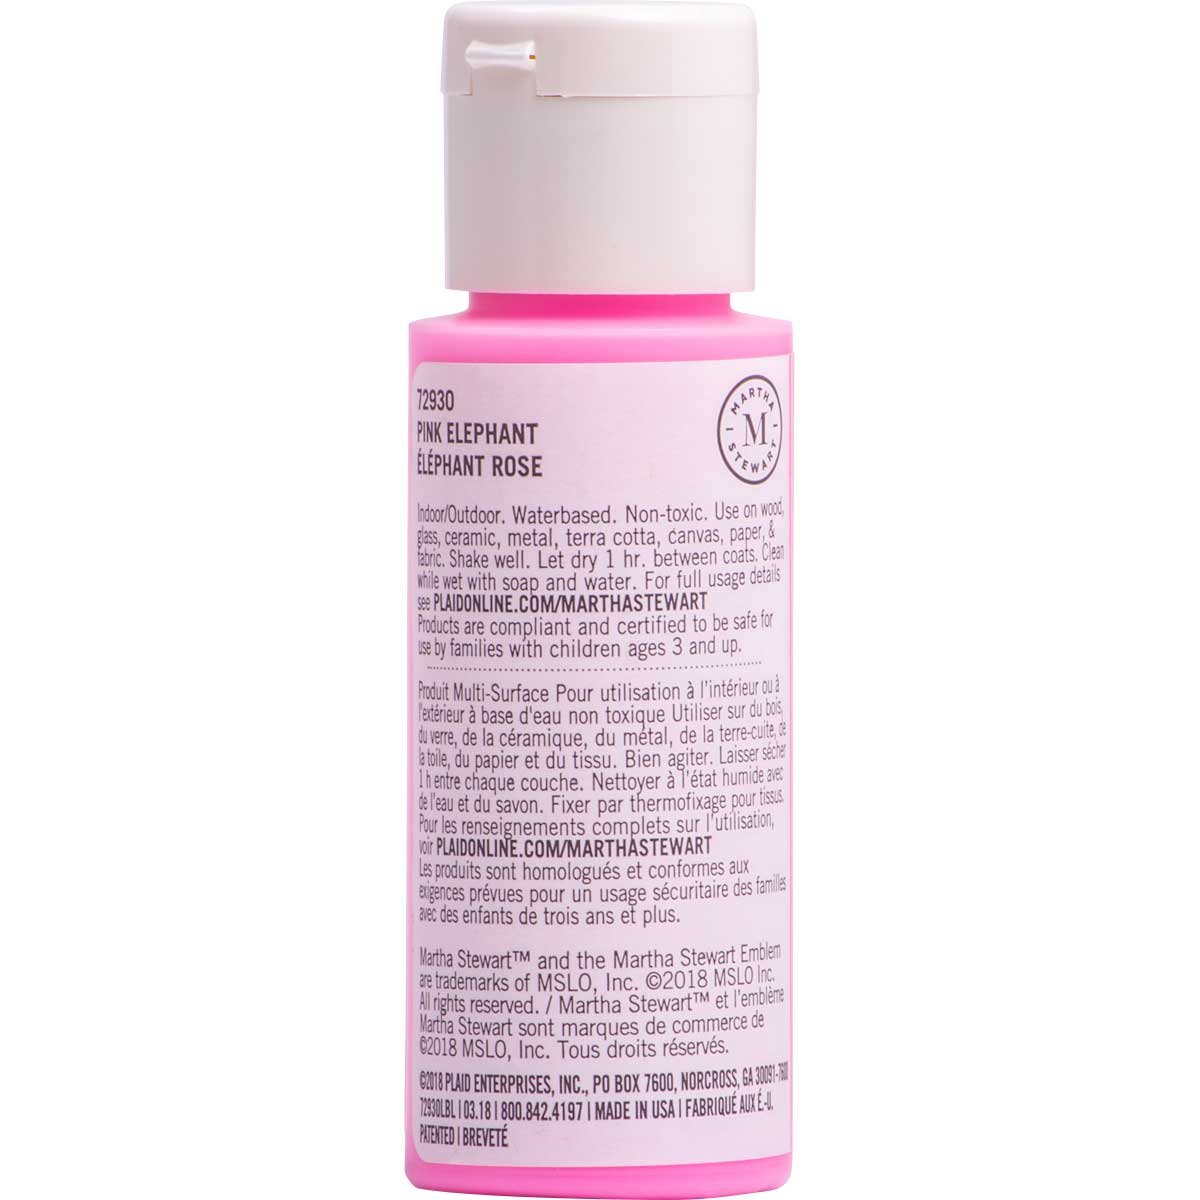 Martha Stewart ® Multi-Surface Glow-in-the-Dark Acrylic Craft Paint CPSIA - Pink Elephant, 2 oz. - 7